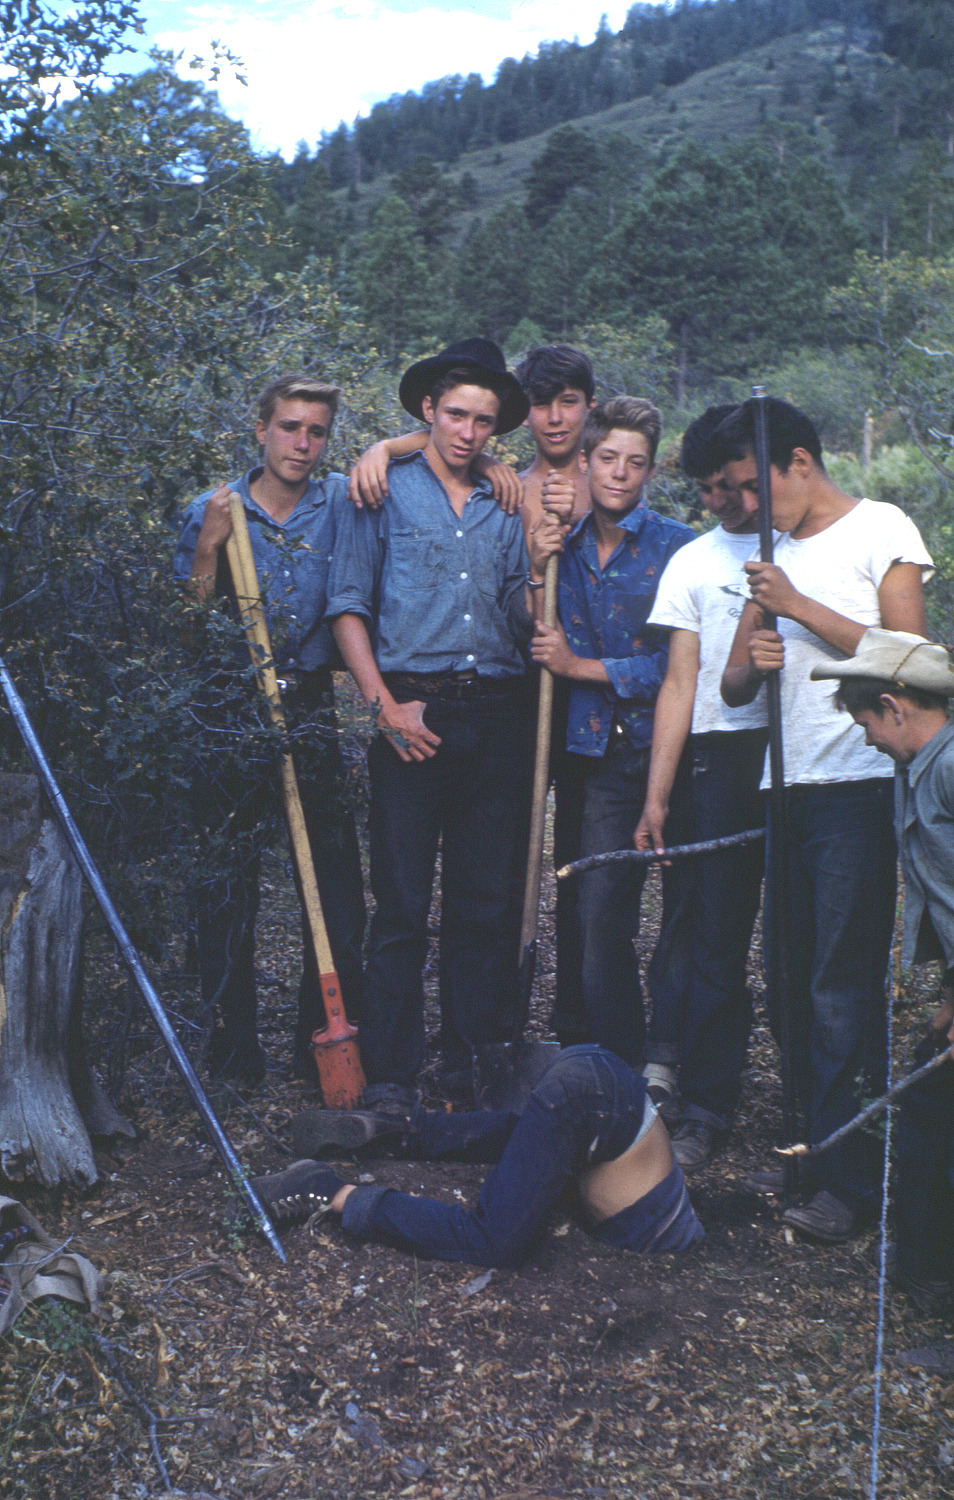 In '49, the campers dug an 80 ft well by hand